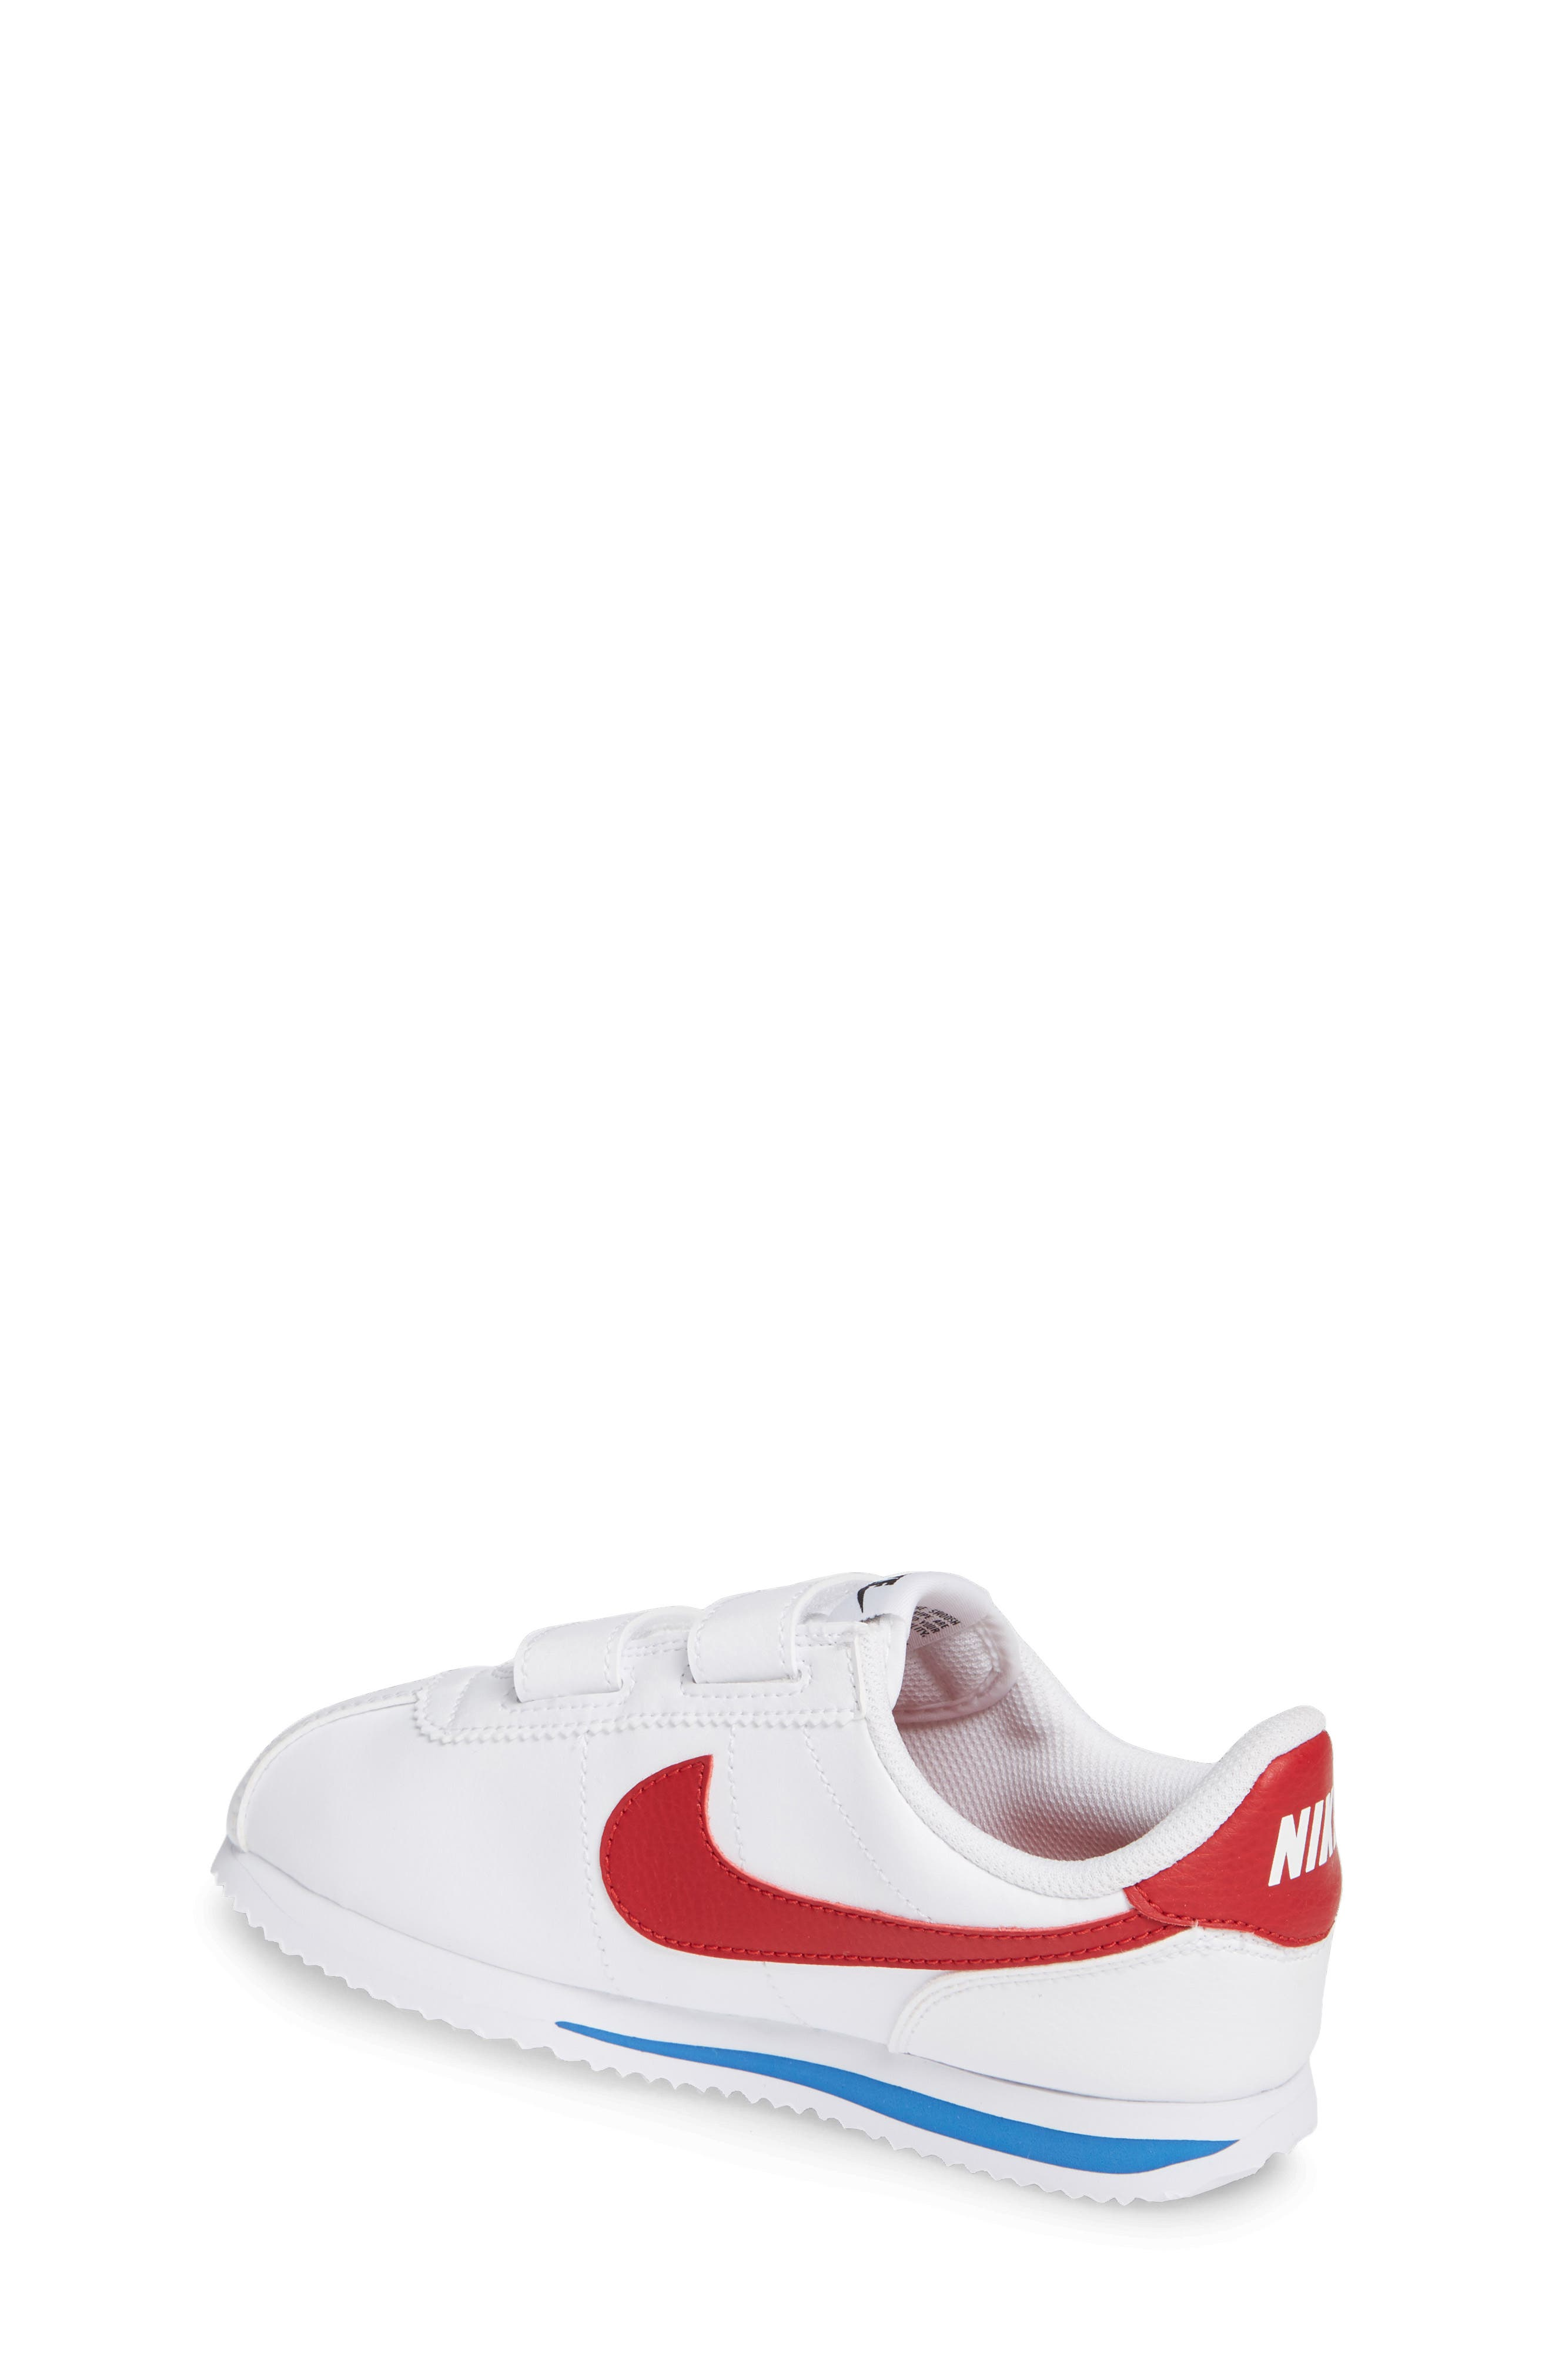 NIKE,                             Cortez Basic SL Sneaker,                             Alternate thumbnail 2, color,                             WHITE/ VARSITY RED/ BLACK